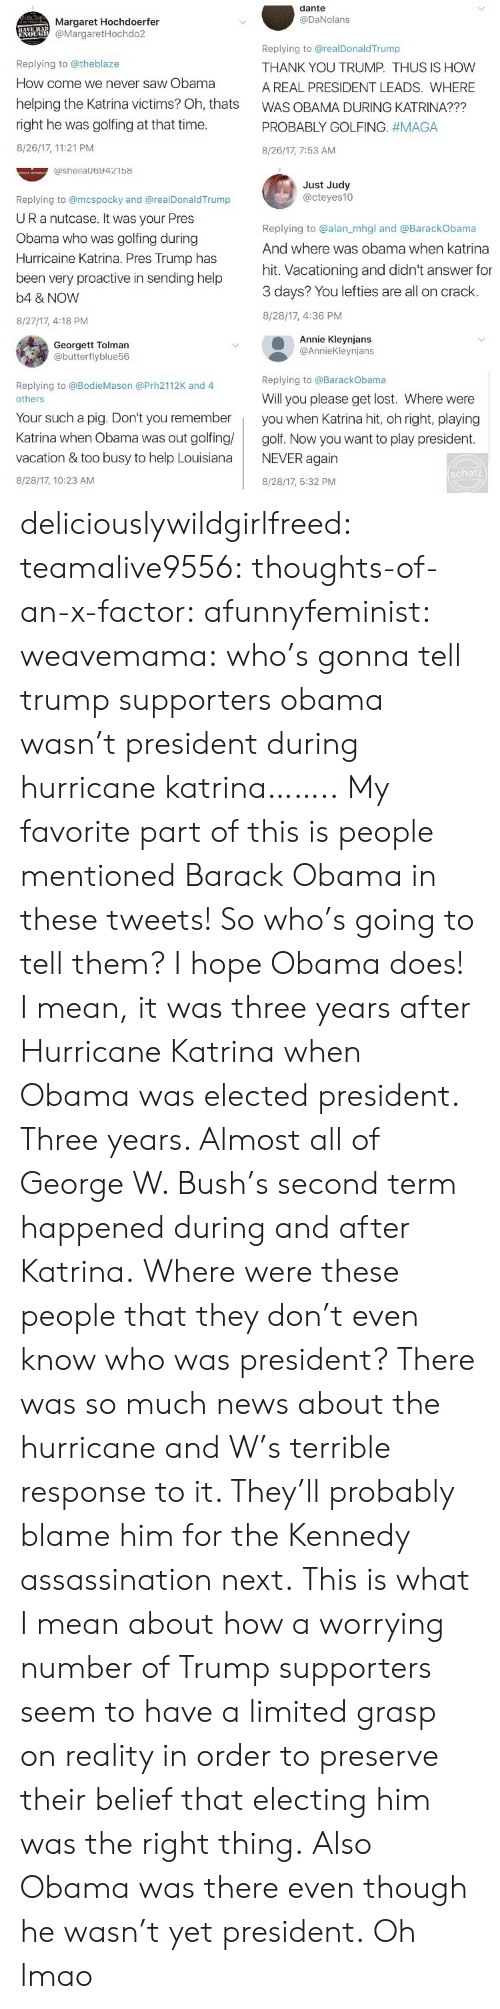 Golfing: dante  @DaNolans  Margaret Hochdoerfer  @MargaretHochdo2  Replying to @theblaze  How come we never saw Obama  helping the Katrina victims? Oh, thats  right he was golfing at that time  8/26/17, 11:21 PM  Replying to @realDonaldTrump  THANK YOU TRUMP. THUS IS HOW  A REAL PRESIDENT LEADS. WHERE  WAS OBAMA DURING KATRINA???  PROBABLY GOLFING. #MAGA  8/26/17, 7:53 AM  ashelaUb9421b8  Just Judy  @cteyes10  Replying to @mcspocky and @realDonaldTrump  UR a nutcase. It Was your Pres  Obama who was golfing during  Hurricaine Katrina. Pres Trump has  been very proactive in sending help  b4 & NOVW  8/27/17, 4:18 PM  Replying to @alan_mhgl and @BarackObama  And where was obama when katrina  hit. Vacationing and didn't answer for  3 days? You lefties are all on crack.  8/28/17, 4:36 PM  Georgett Tolman  @butterflyblue56  Annie Kleynjans  @AnnieKleynjans  Replying to @BarackObama  Replying to @BodieMason @Prh2112K and 4  Will you please get lost. Where were  others  Your such a pig. Don't you rememberyou when Katrina hit, oh right, playing  Katrina when Obama was out golfing golf. Now you want to play president  vacation & too busy to help LouisianaNEVER again  8/28/17, 10:23 AM  schatz  8/28/17, 5:32 PM deliciouslywildgirlfreed:  teamalive9556:   thoughts-of-an-x-factor:   afunnyfeminist:  weavemama: who's gonna tell trump supporters obama wasn't president during hurricane katrina…….. My favorite part of this is people mentioned Barack Obama in these tweets! So who's going to tell them? I hope Obama does! I mean, it was three years after Hurricane Katrina when Obama was elected president. Three years. Almost all of George W. Bush's second term happened during and after Katrina.Where were these people that they don't even know who was president? There was so much news about the hurricane and W's terrible response to it. They'll probably blame him for the Kennedy assassination next.  This is what I mean about how a worrying number of Trump supporters seem to have a limite